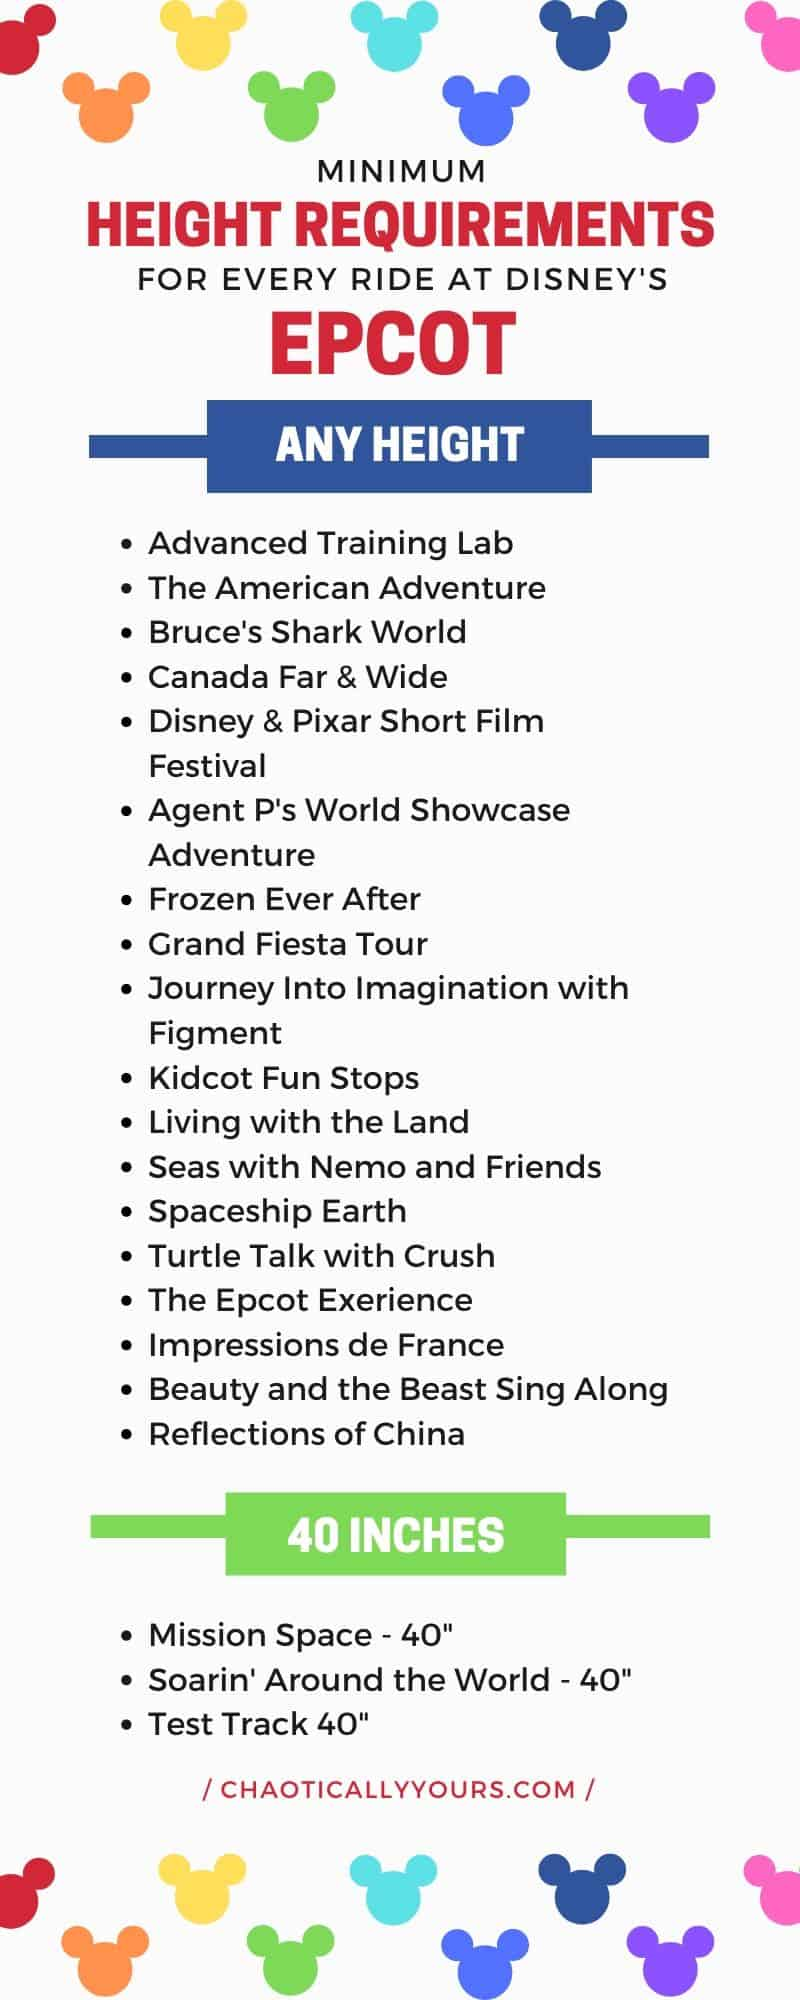 List of Disney World Height Requirements for Rides in Epcot